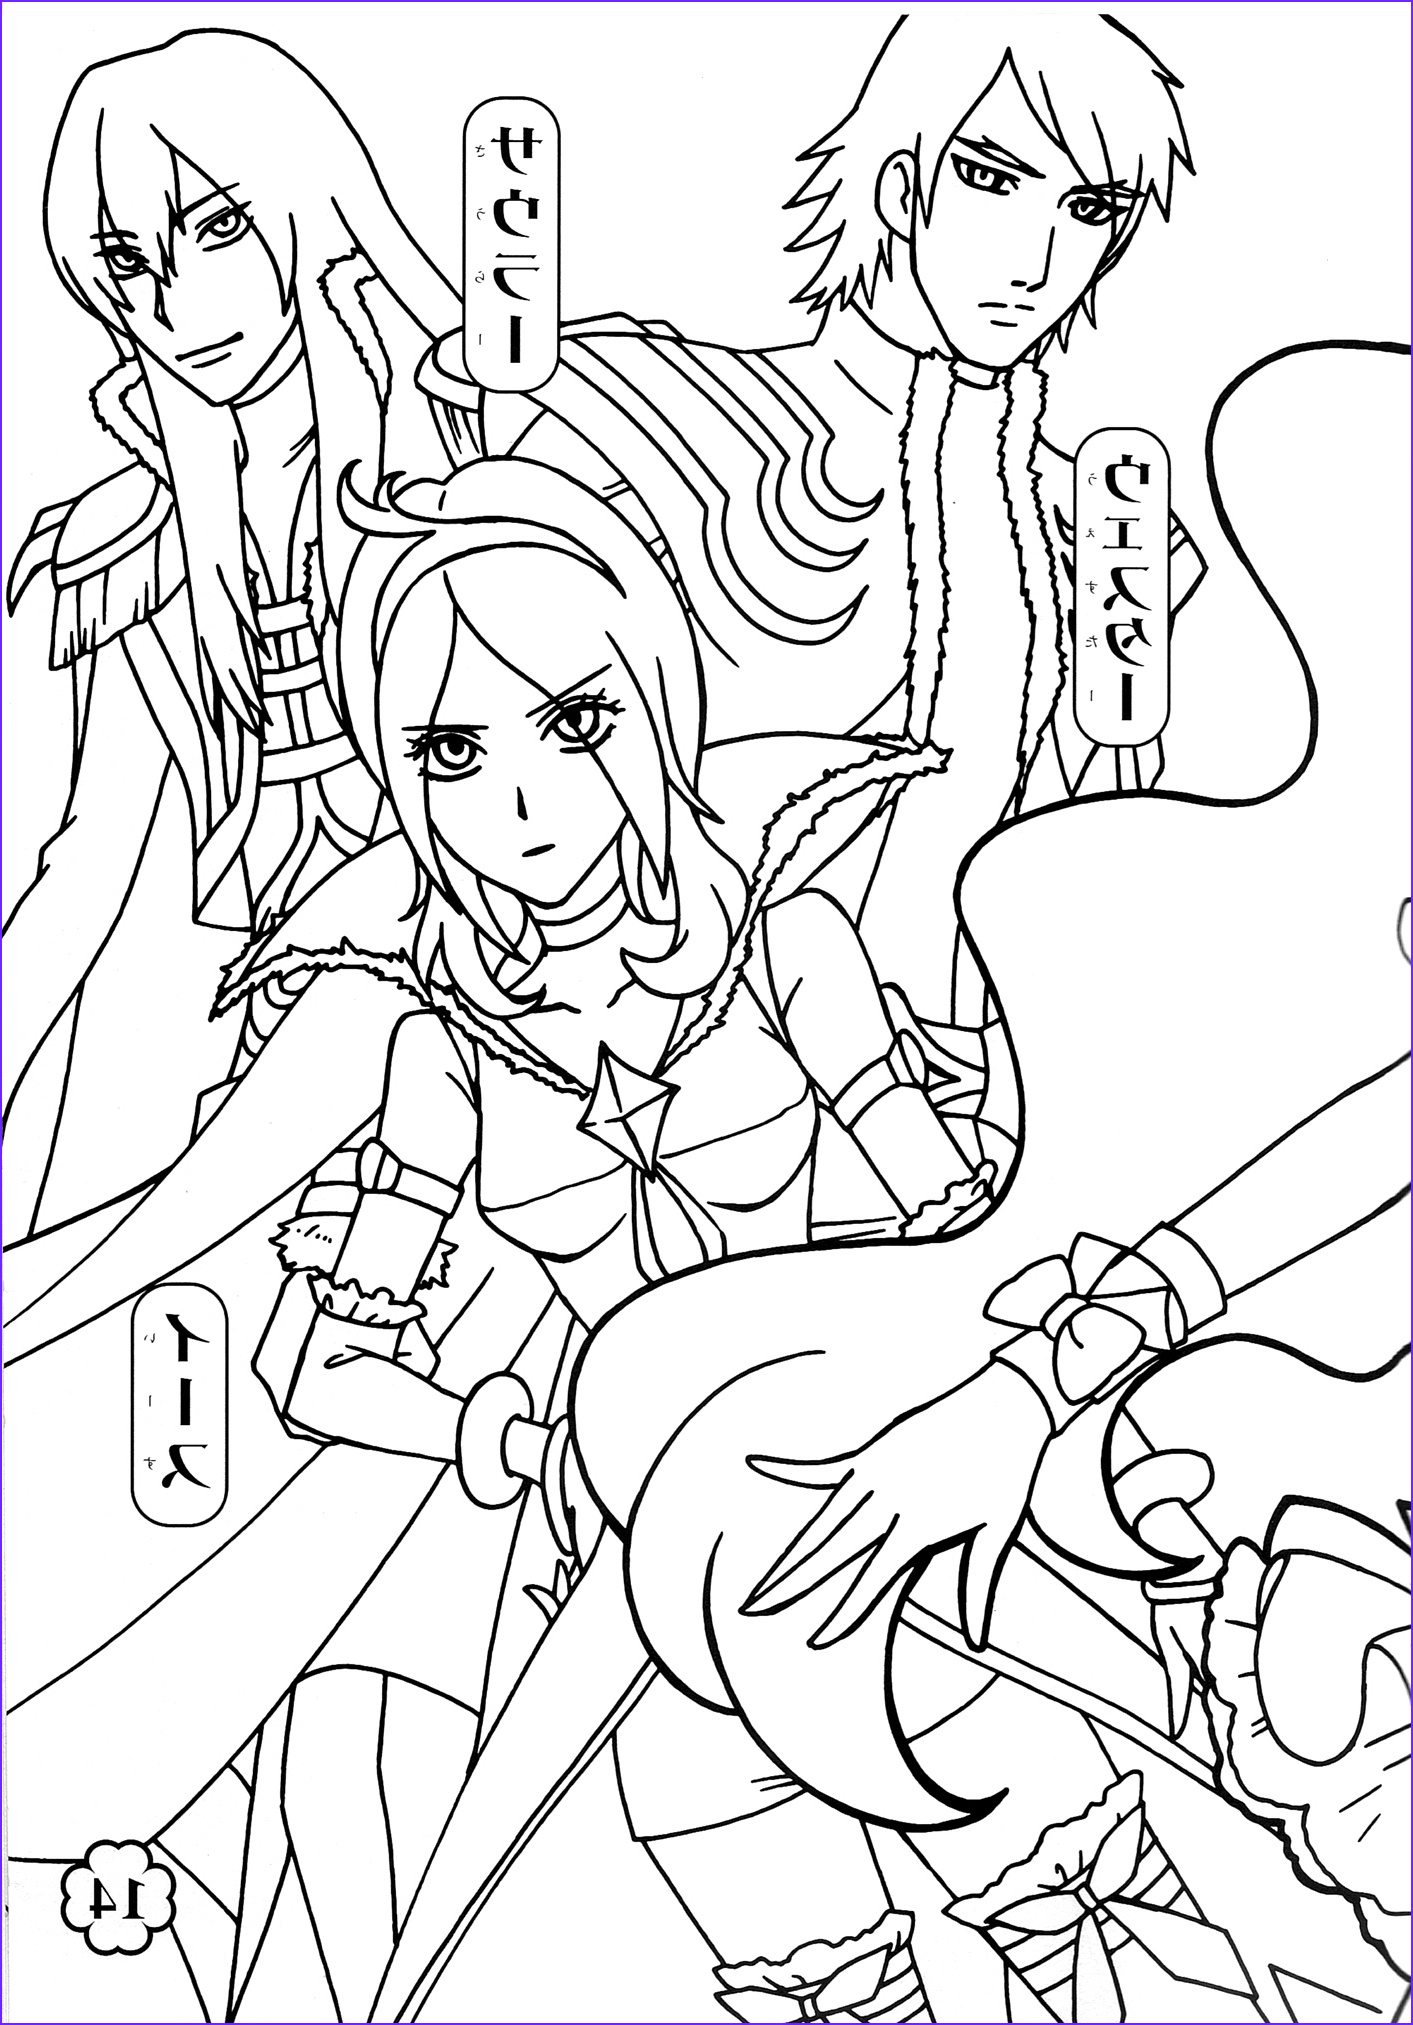 Precure Coloring Page Elegant Stock Precure Coloring Sheets Coloring Pages